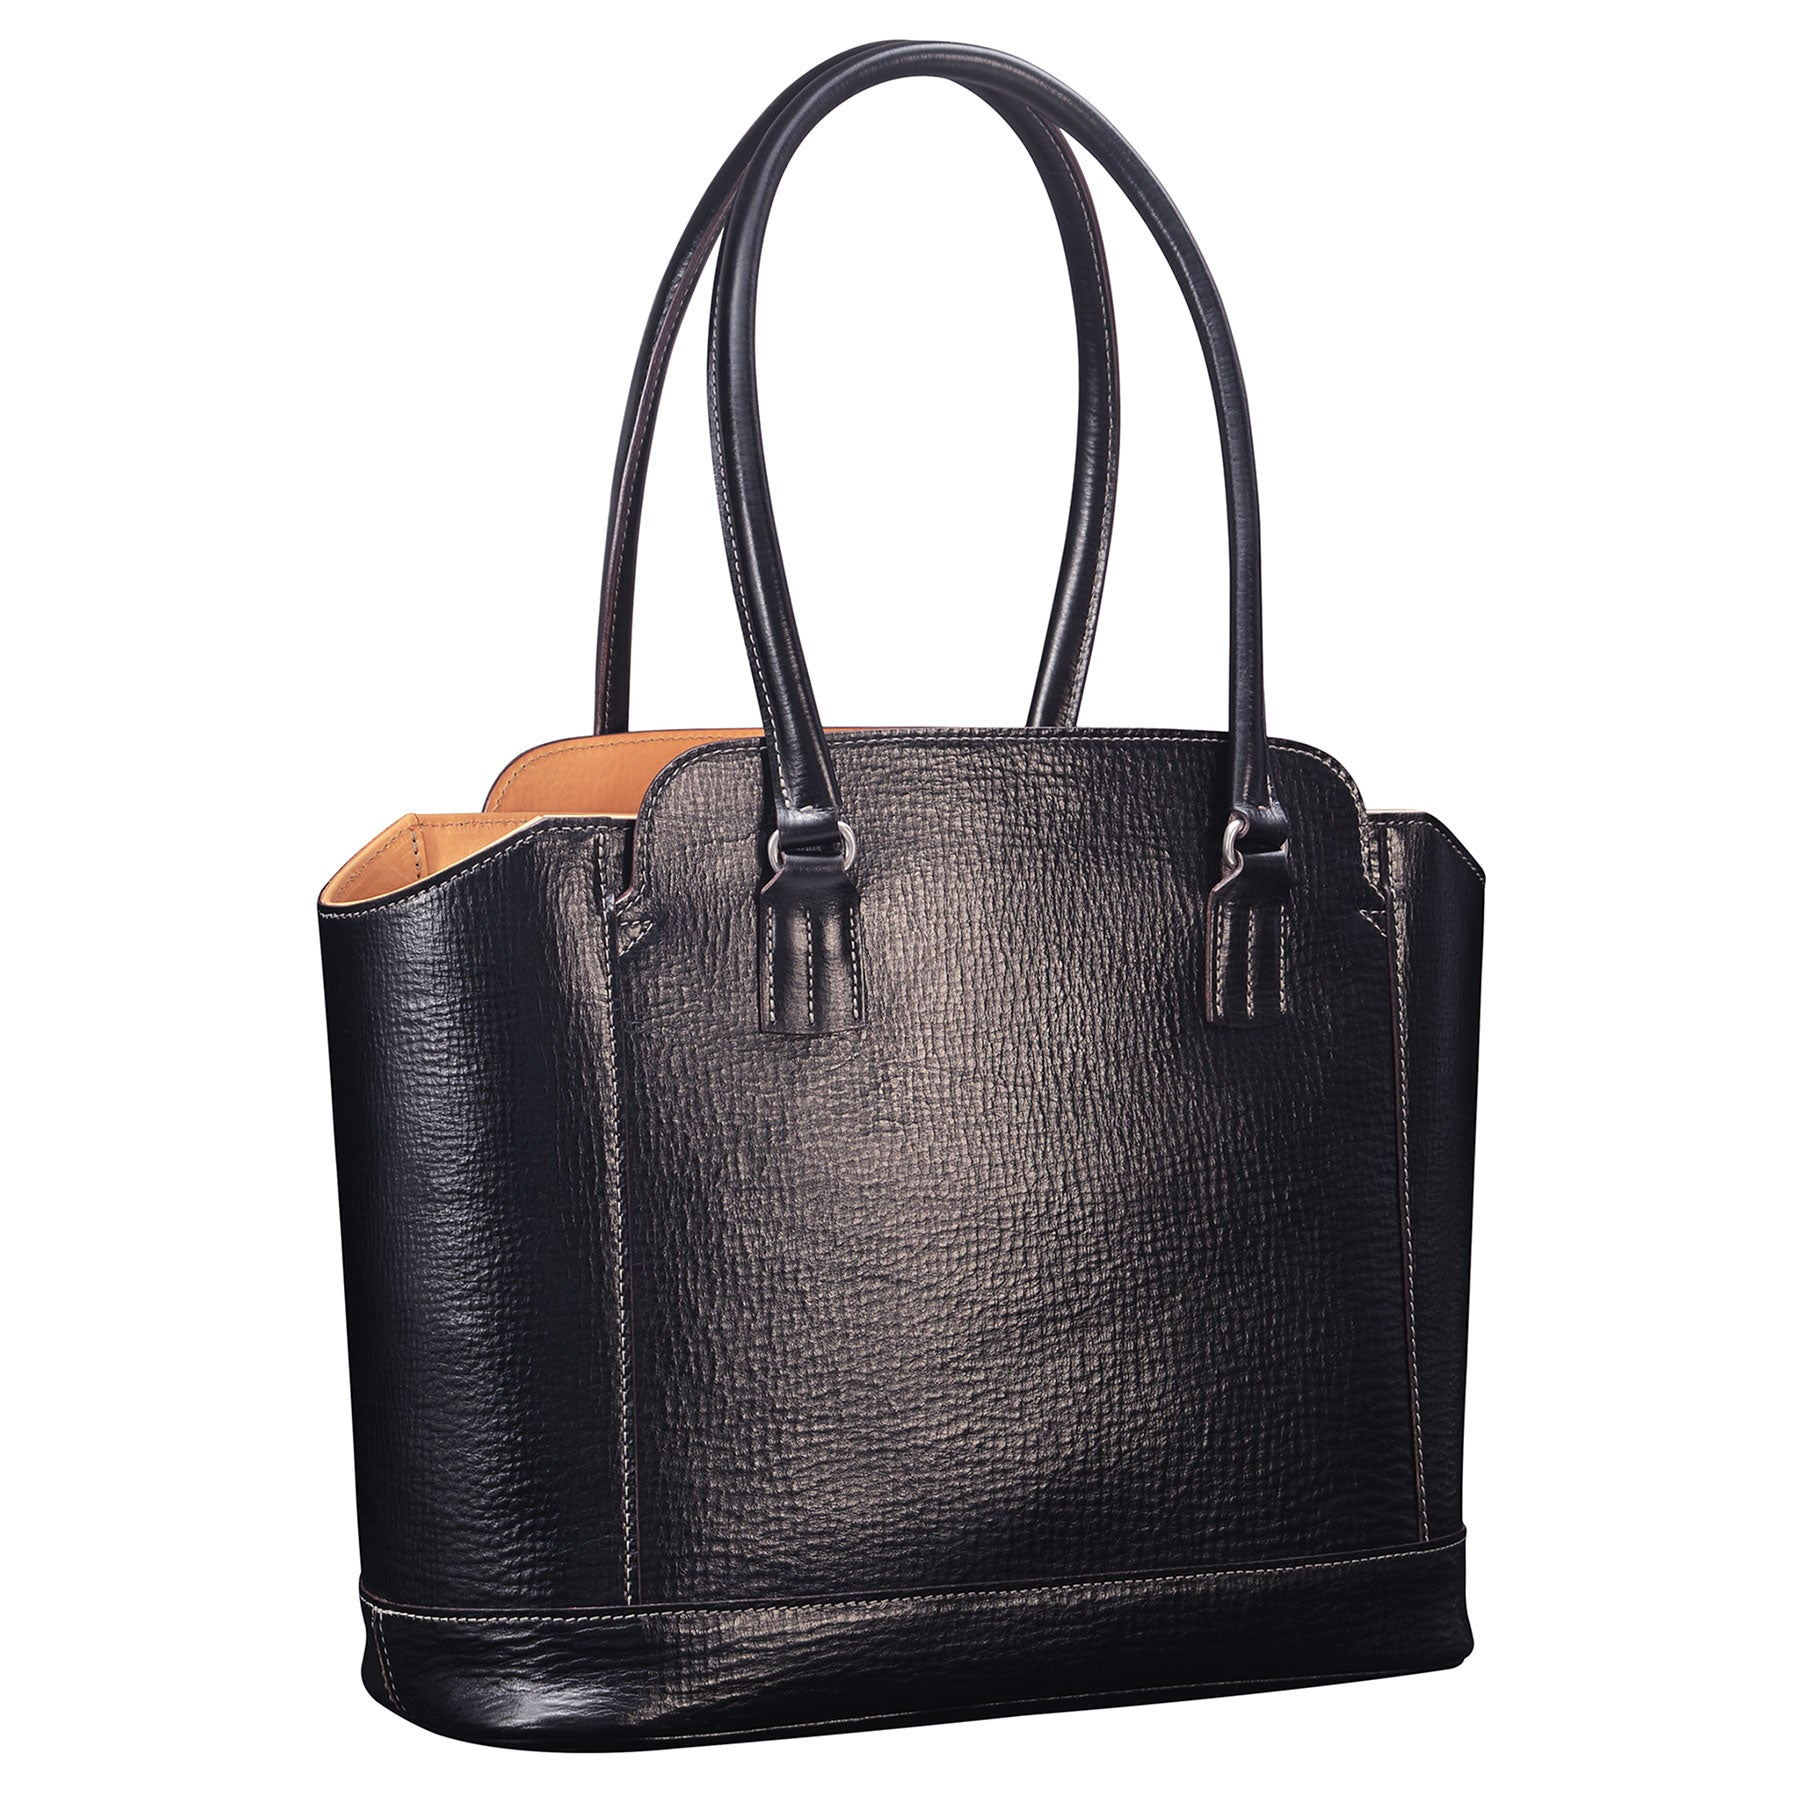 City Tote: Hand-Grained, Hand-Colored Leather